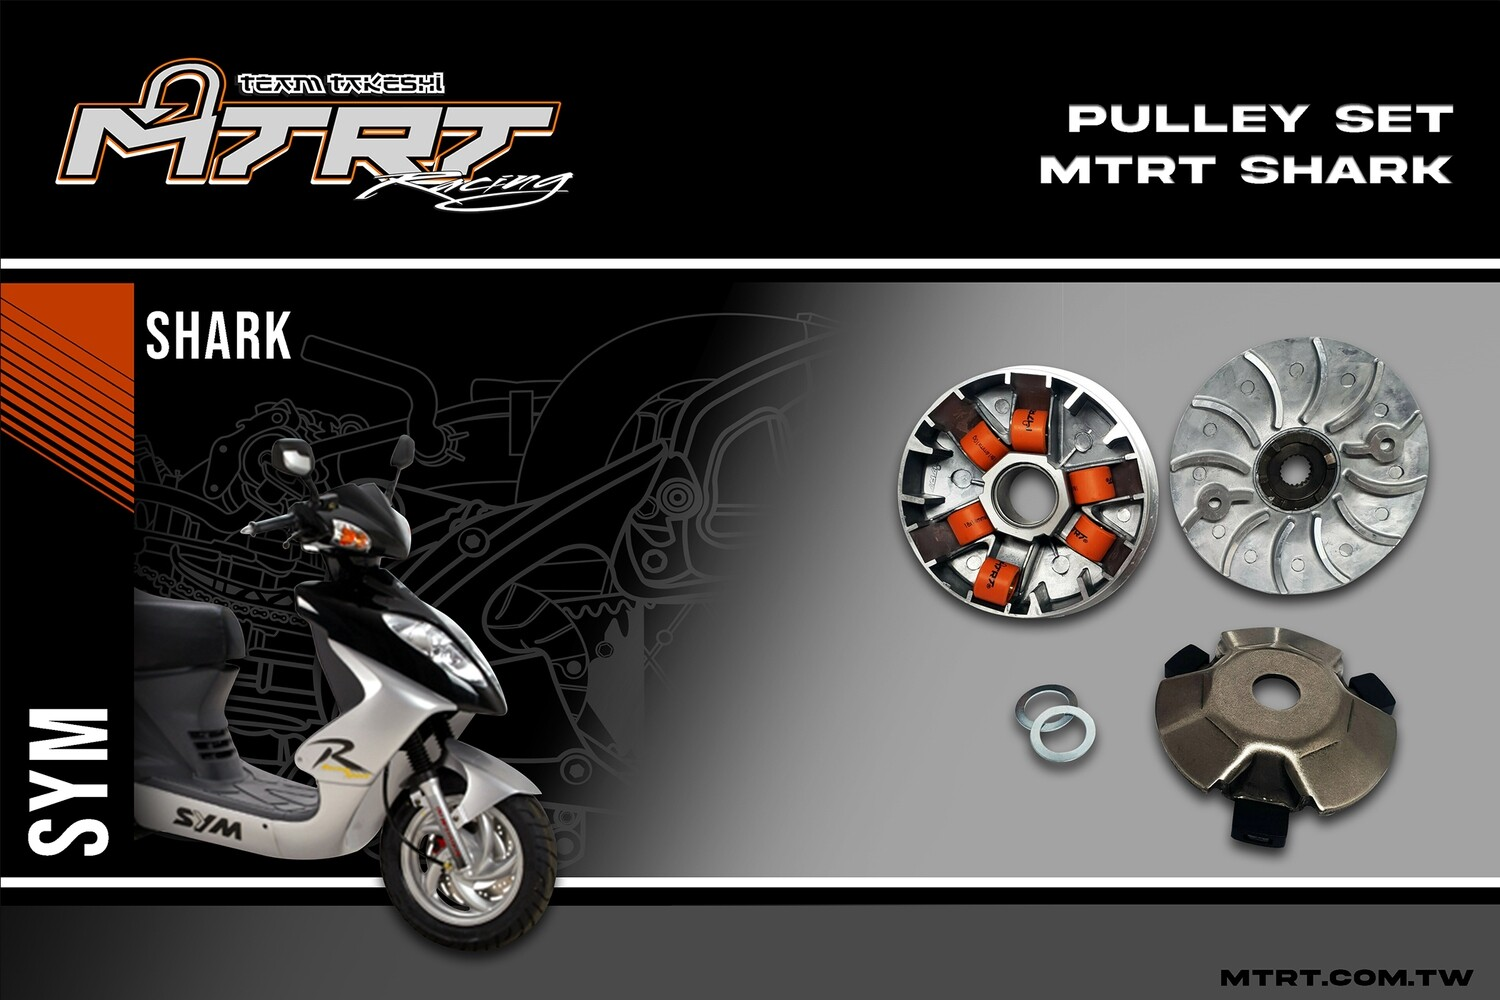 PULLEY SET MTRT SHARK